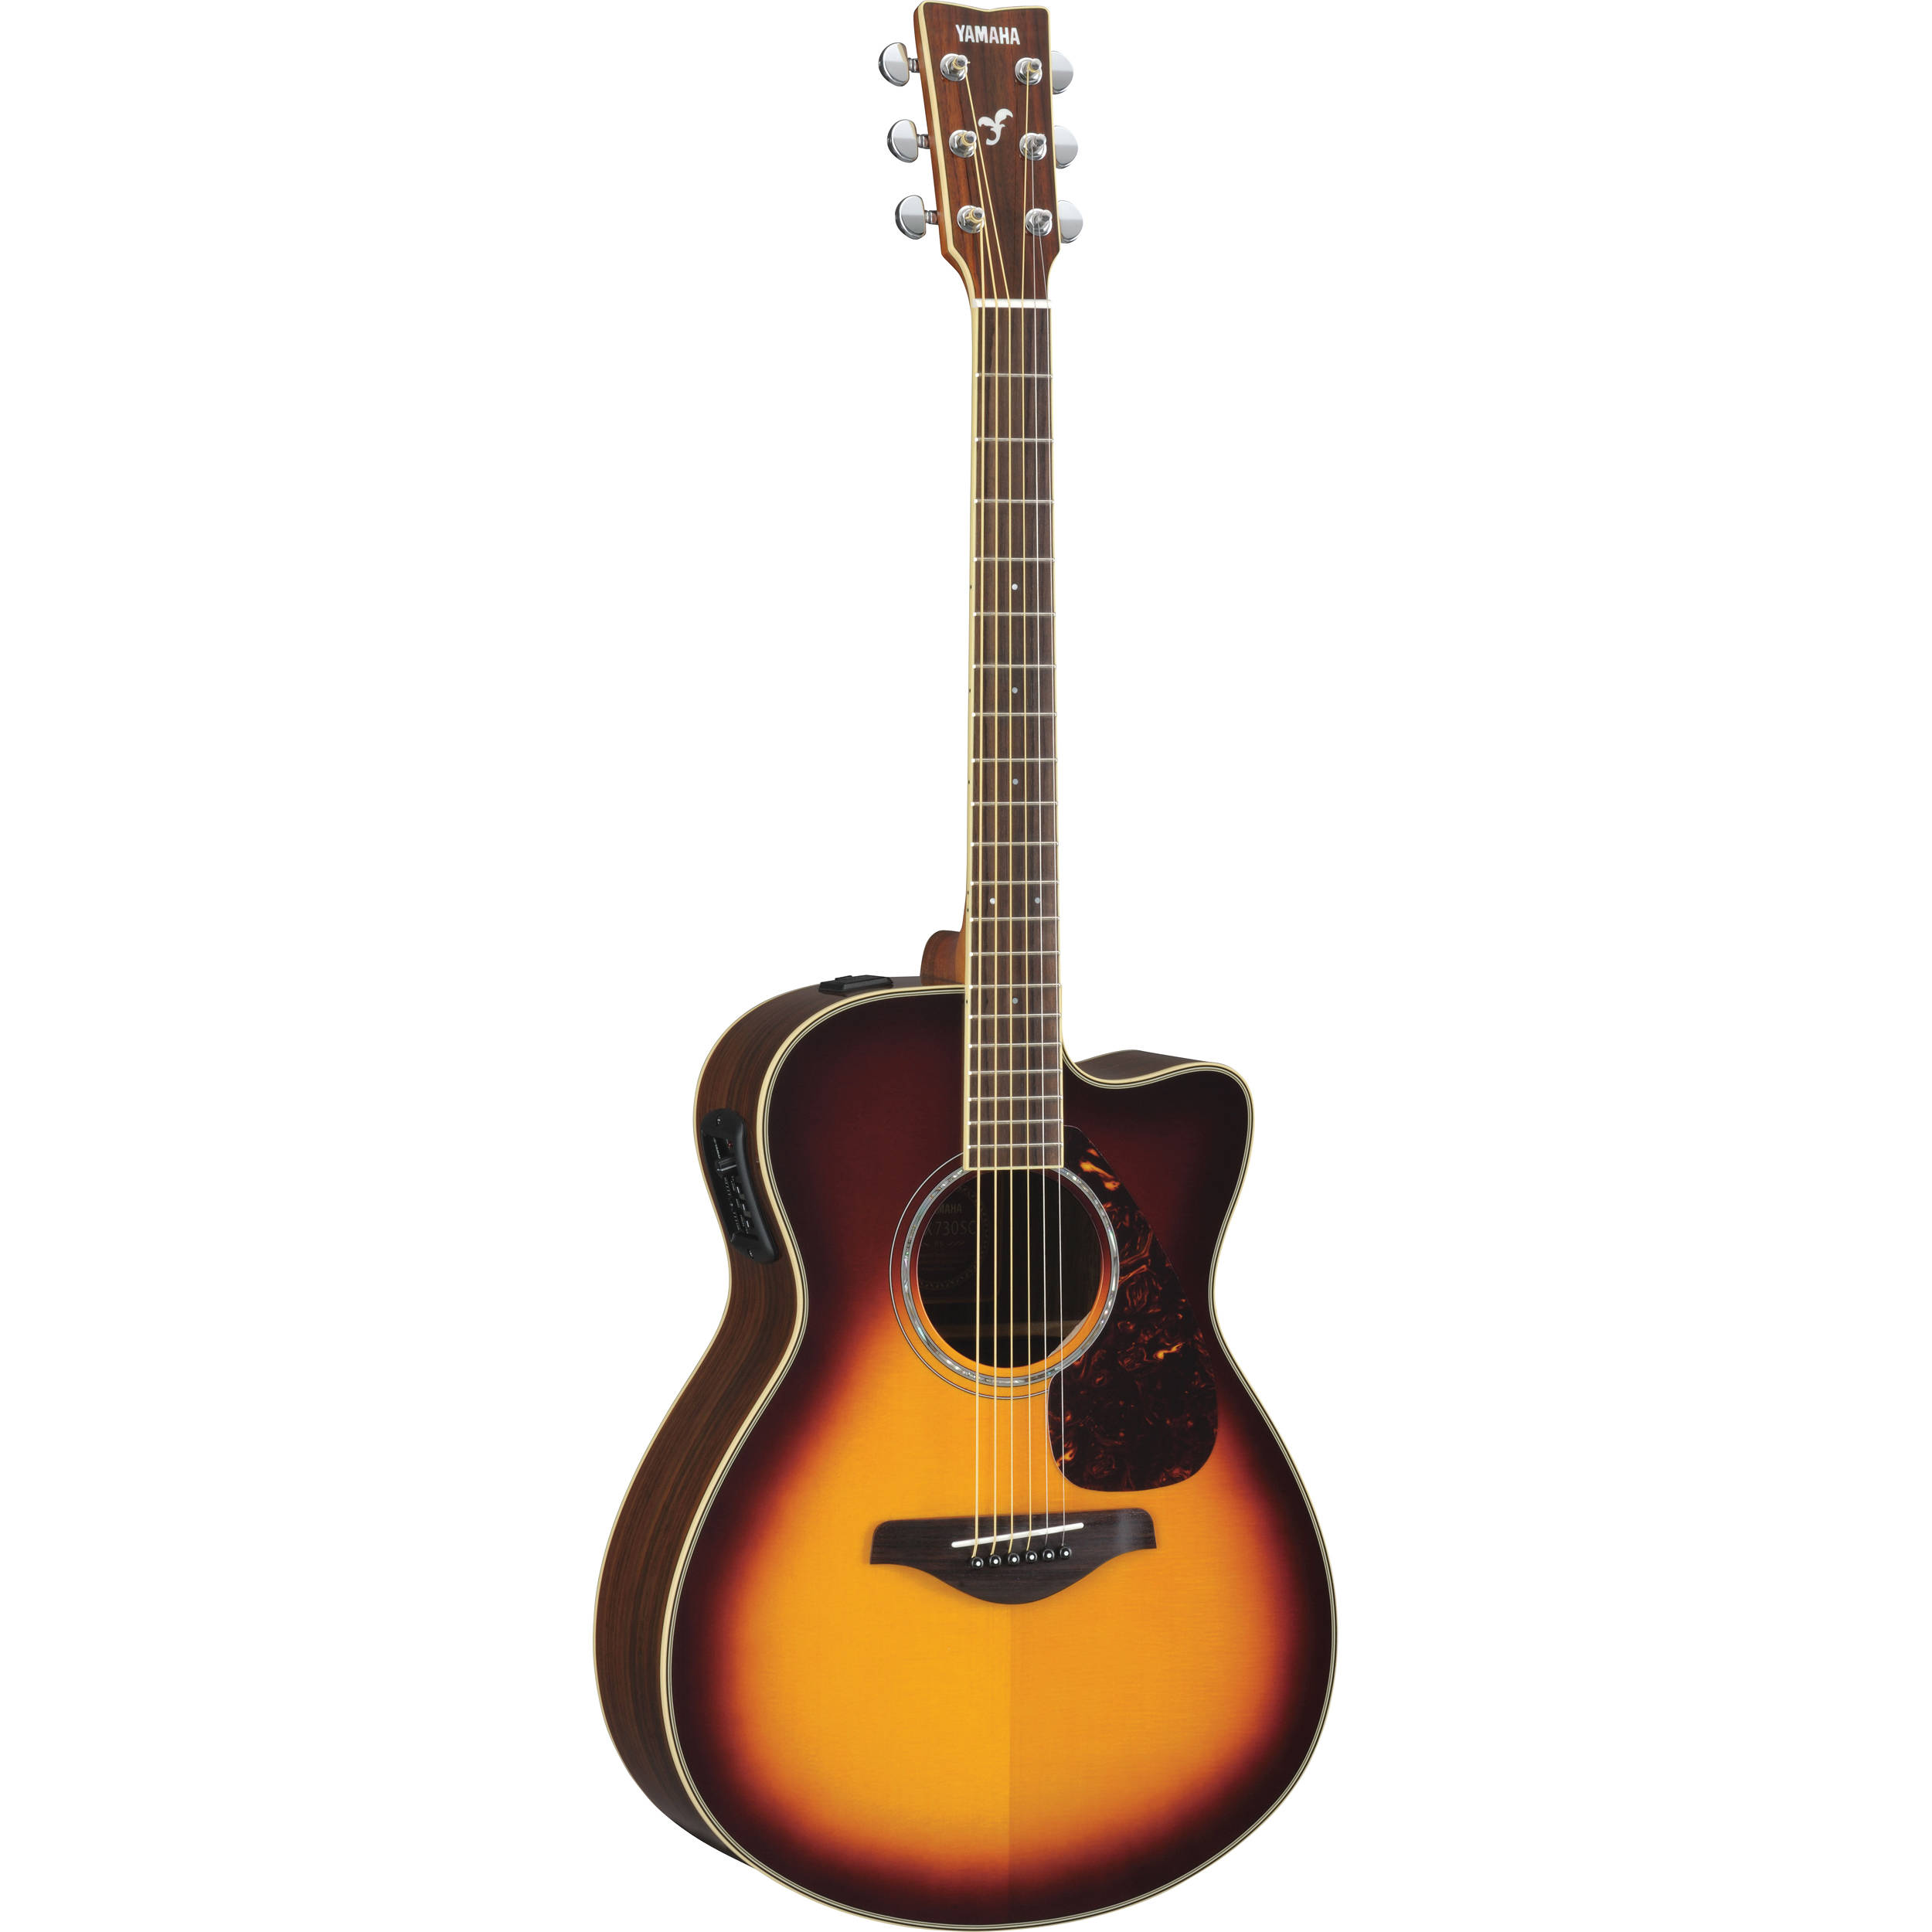 yamaha fsx730sc small body acoustic electric guitar fsx730sc bs. Black Bedroom Furniture Sets. Home Design Ideas